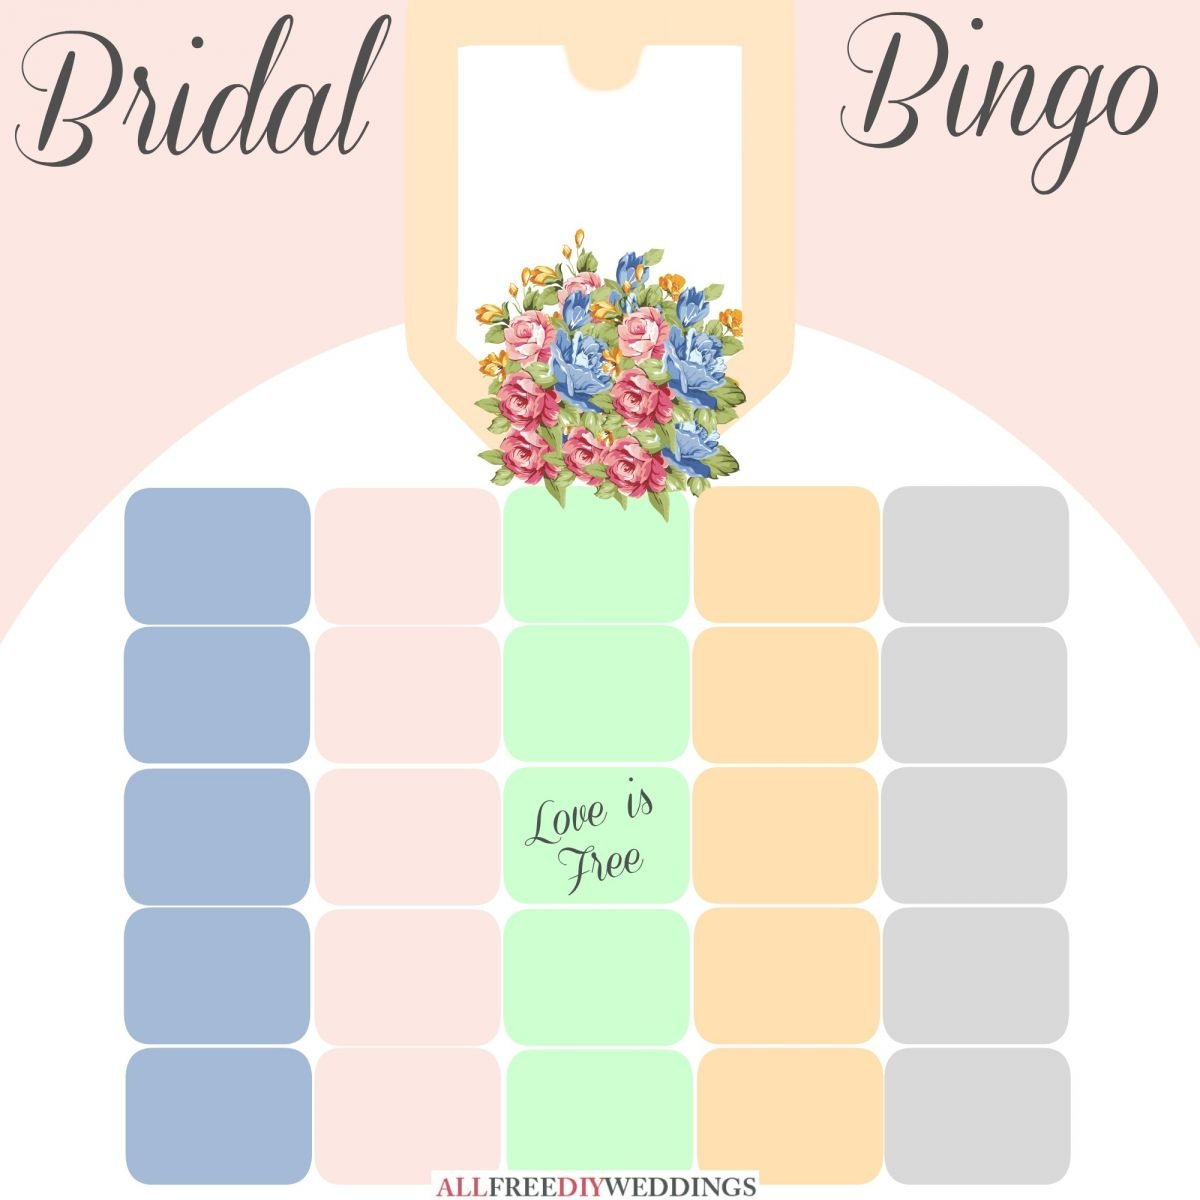 New Bridal Bingo: Free Bridal Shower Games | Allfreediyweddings - Free Printable Bridal Shower Blank Bingo Games